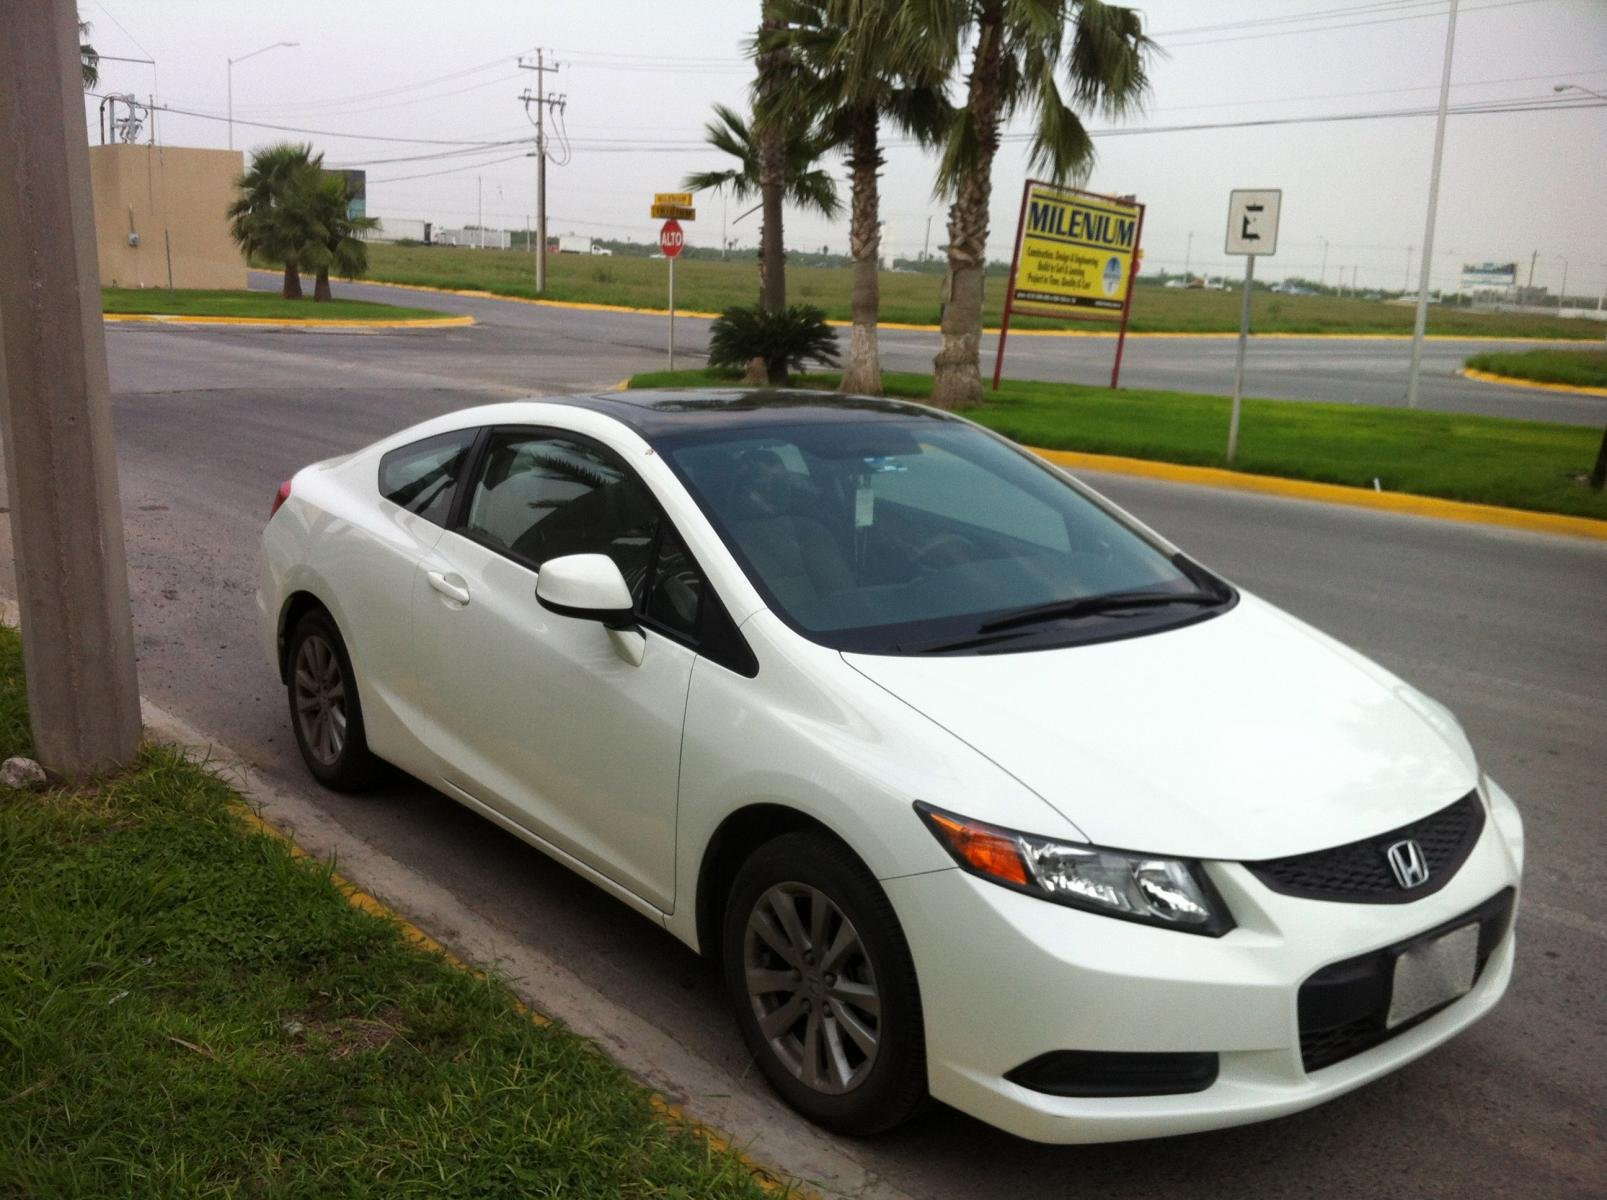 3m Gloss Black Roof Wrap Vinyl On Civic Ex Coupe White 9th Gen Civic Forum